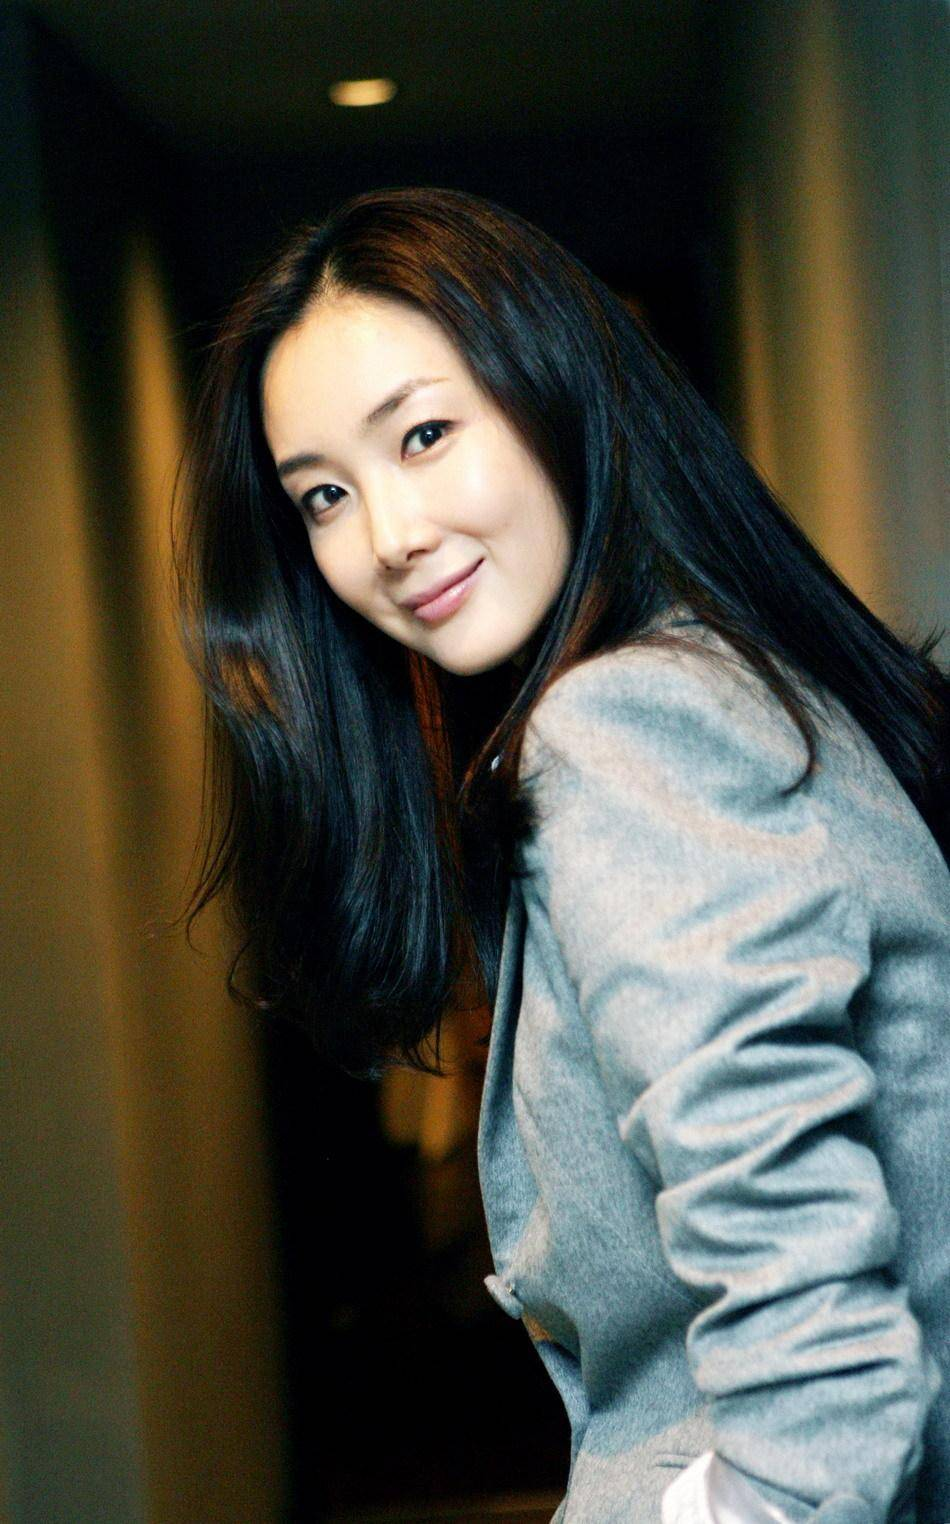 [Photos] Added more pictures for the Korean actress Choi Ji-woo @ HanCinema :: The Korean Movie